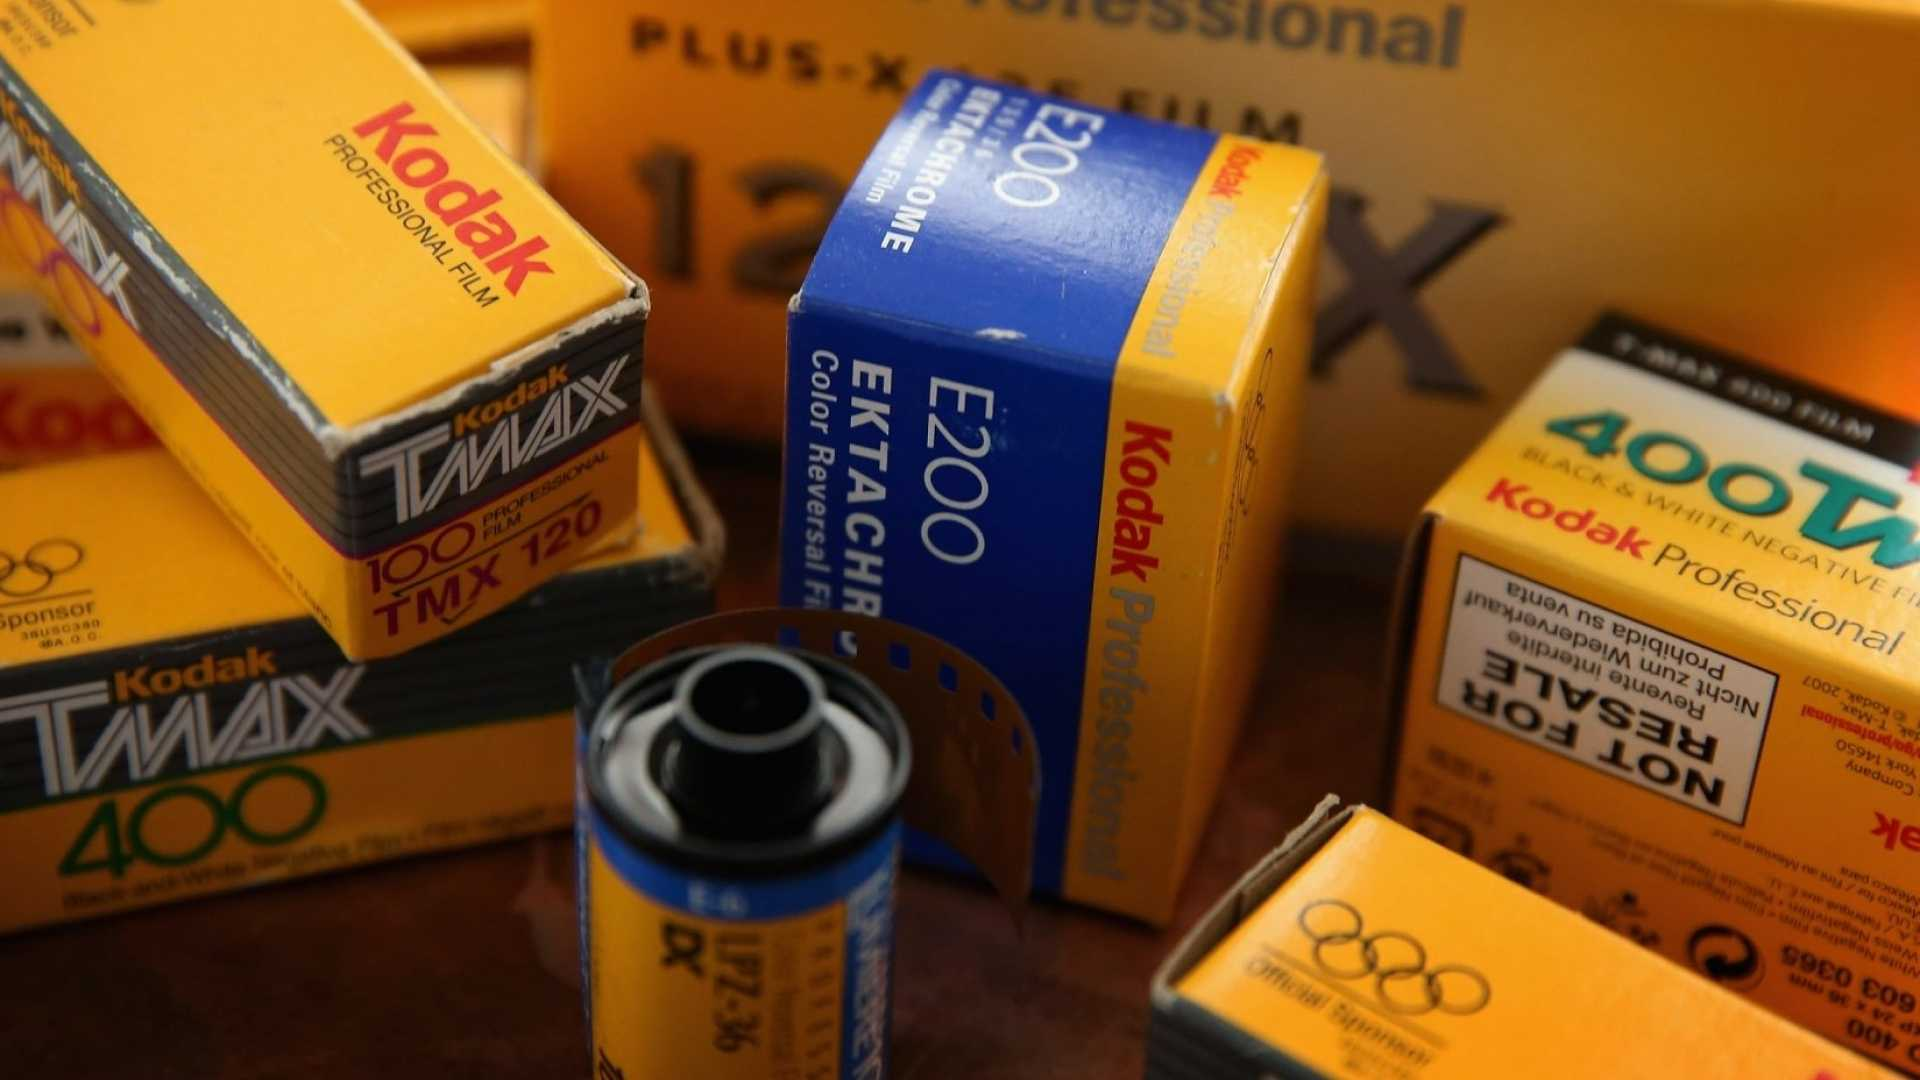 Kodak Is Launching Its Own Cryptocurrency. Do We Need It?